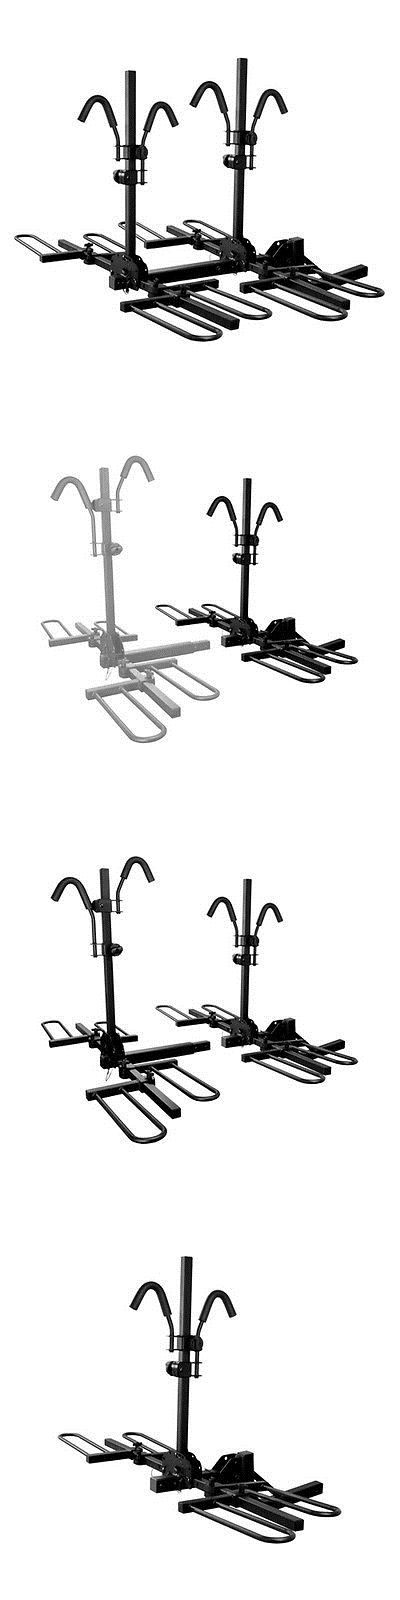 Car and Truck Racks 177849: Curt 18086 - Tray-Style Hitch Mount Bike Rack (4 Bike Fits 2 Receivers) BUY IT NOW ONLY: $242.5